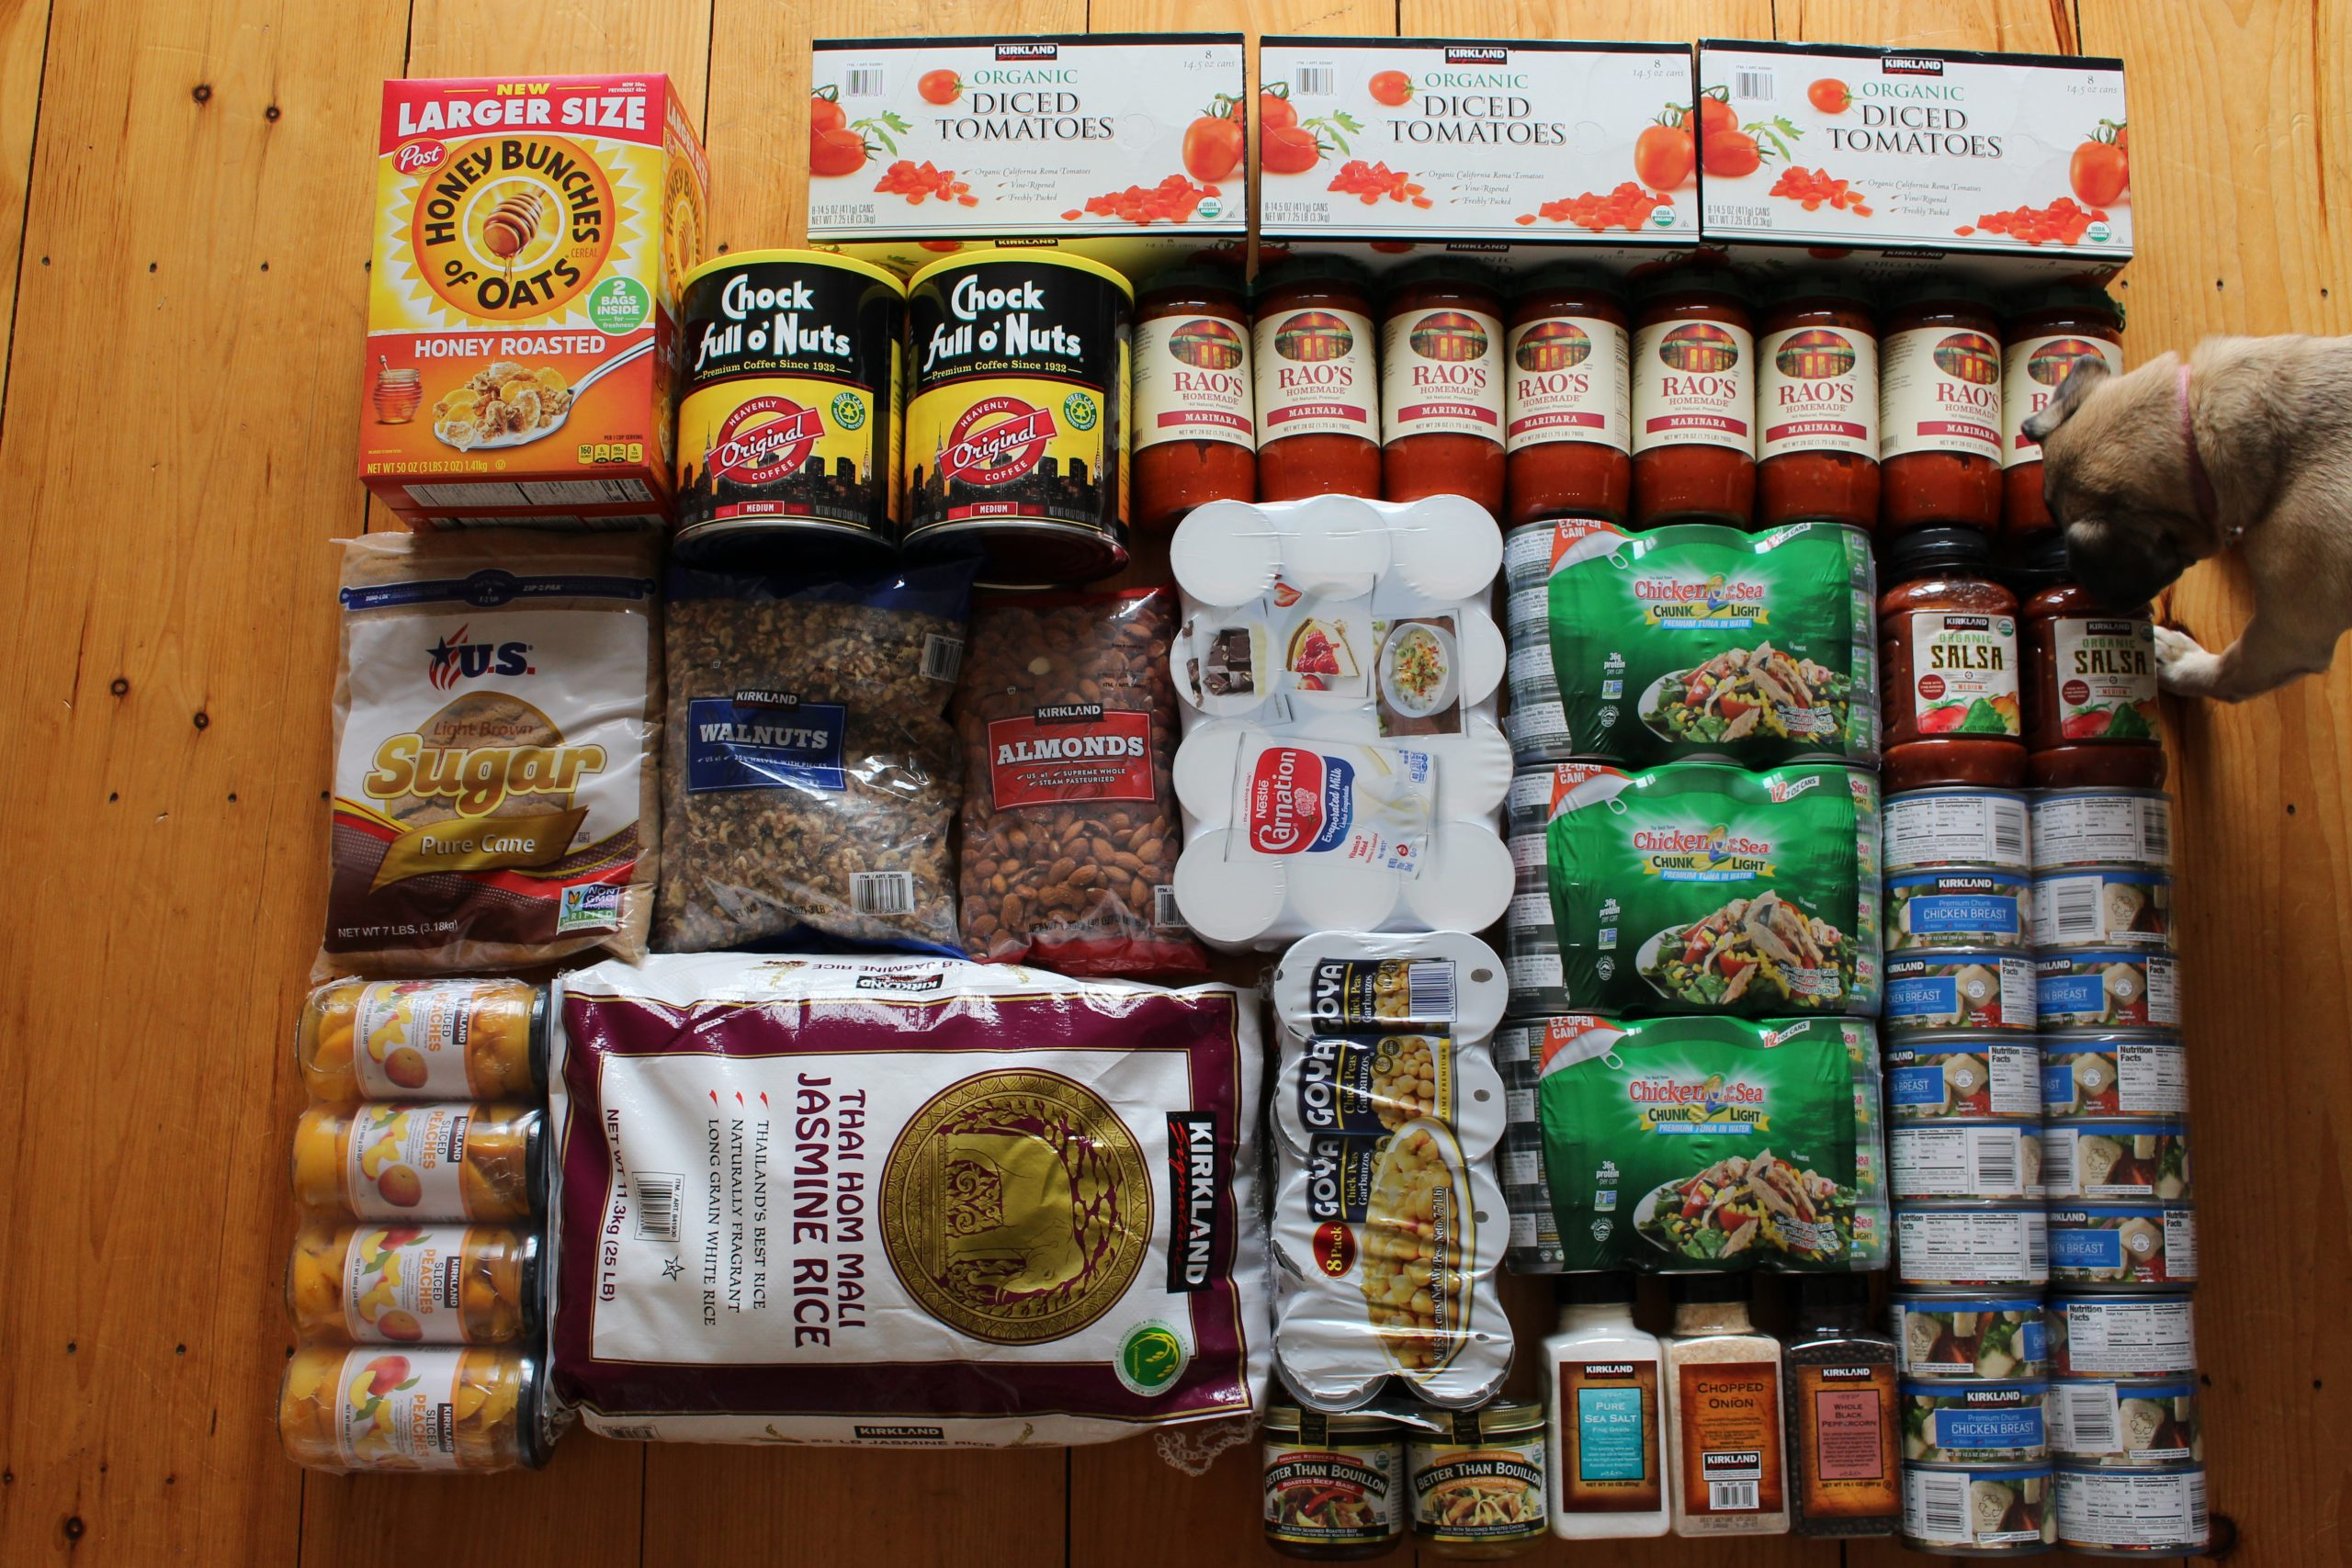 How Much We Spent On Groceries And Meals We Ate Week 33 of 52